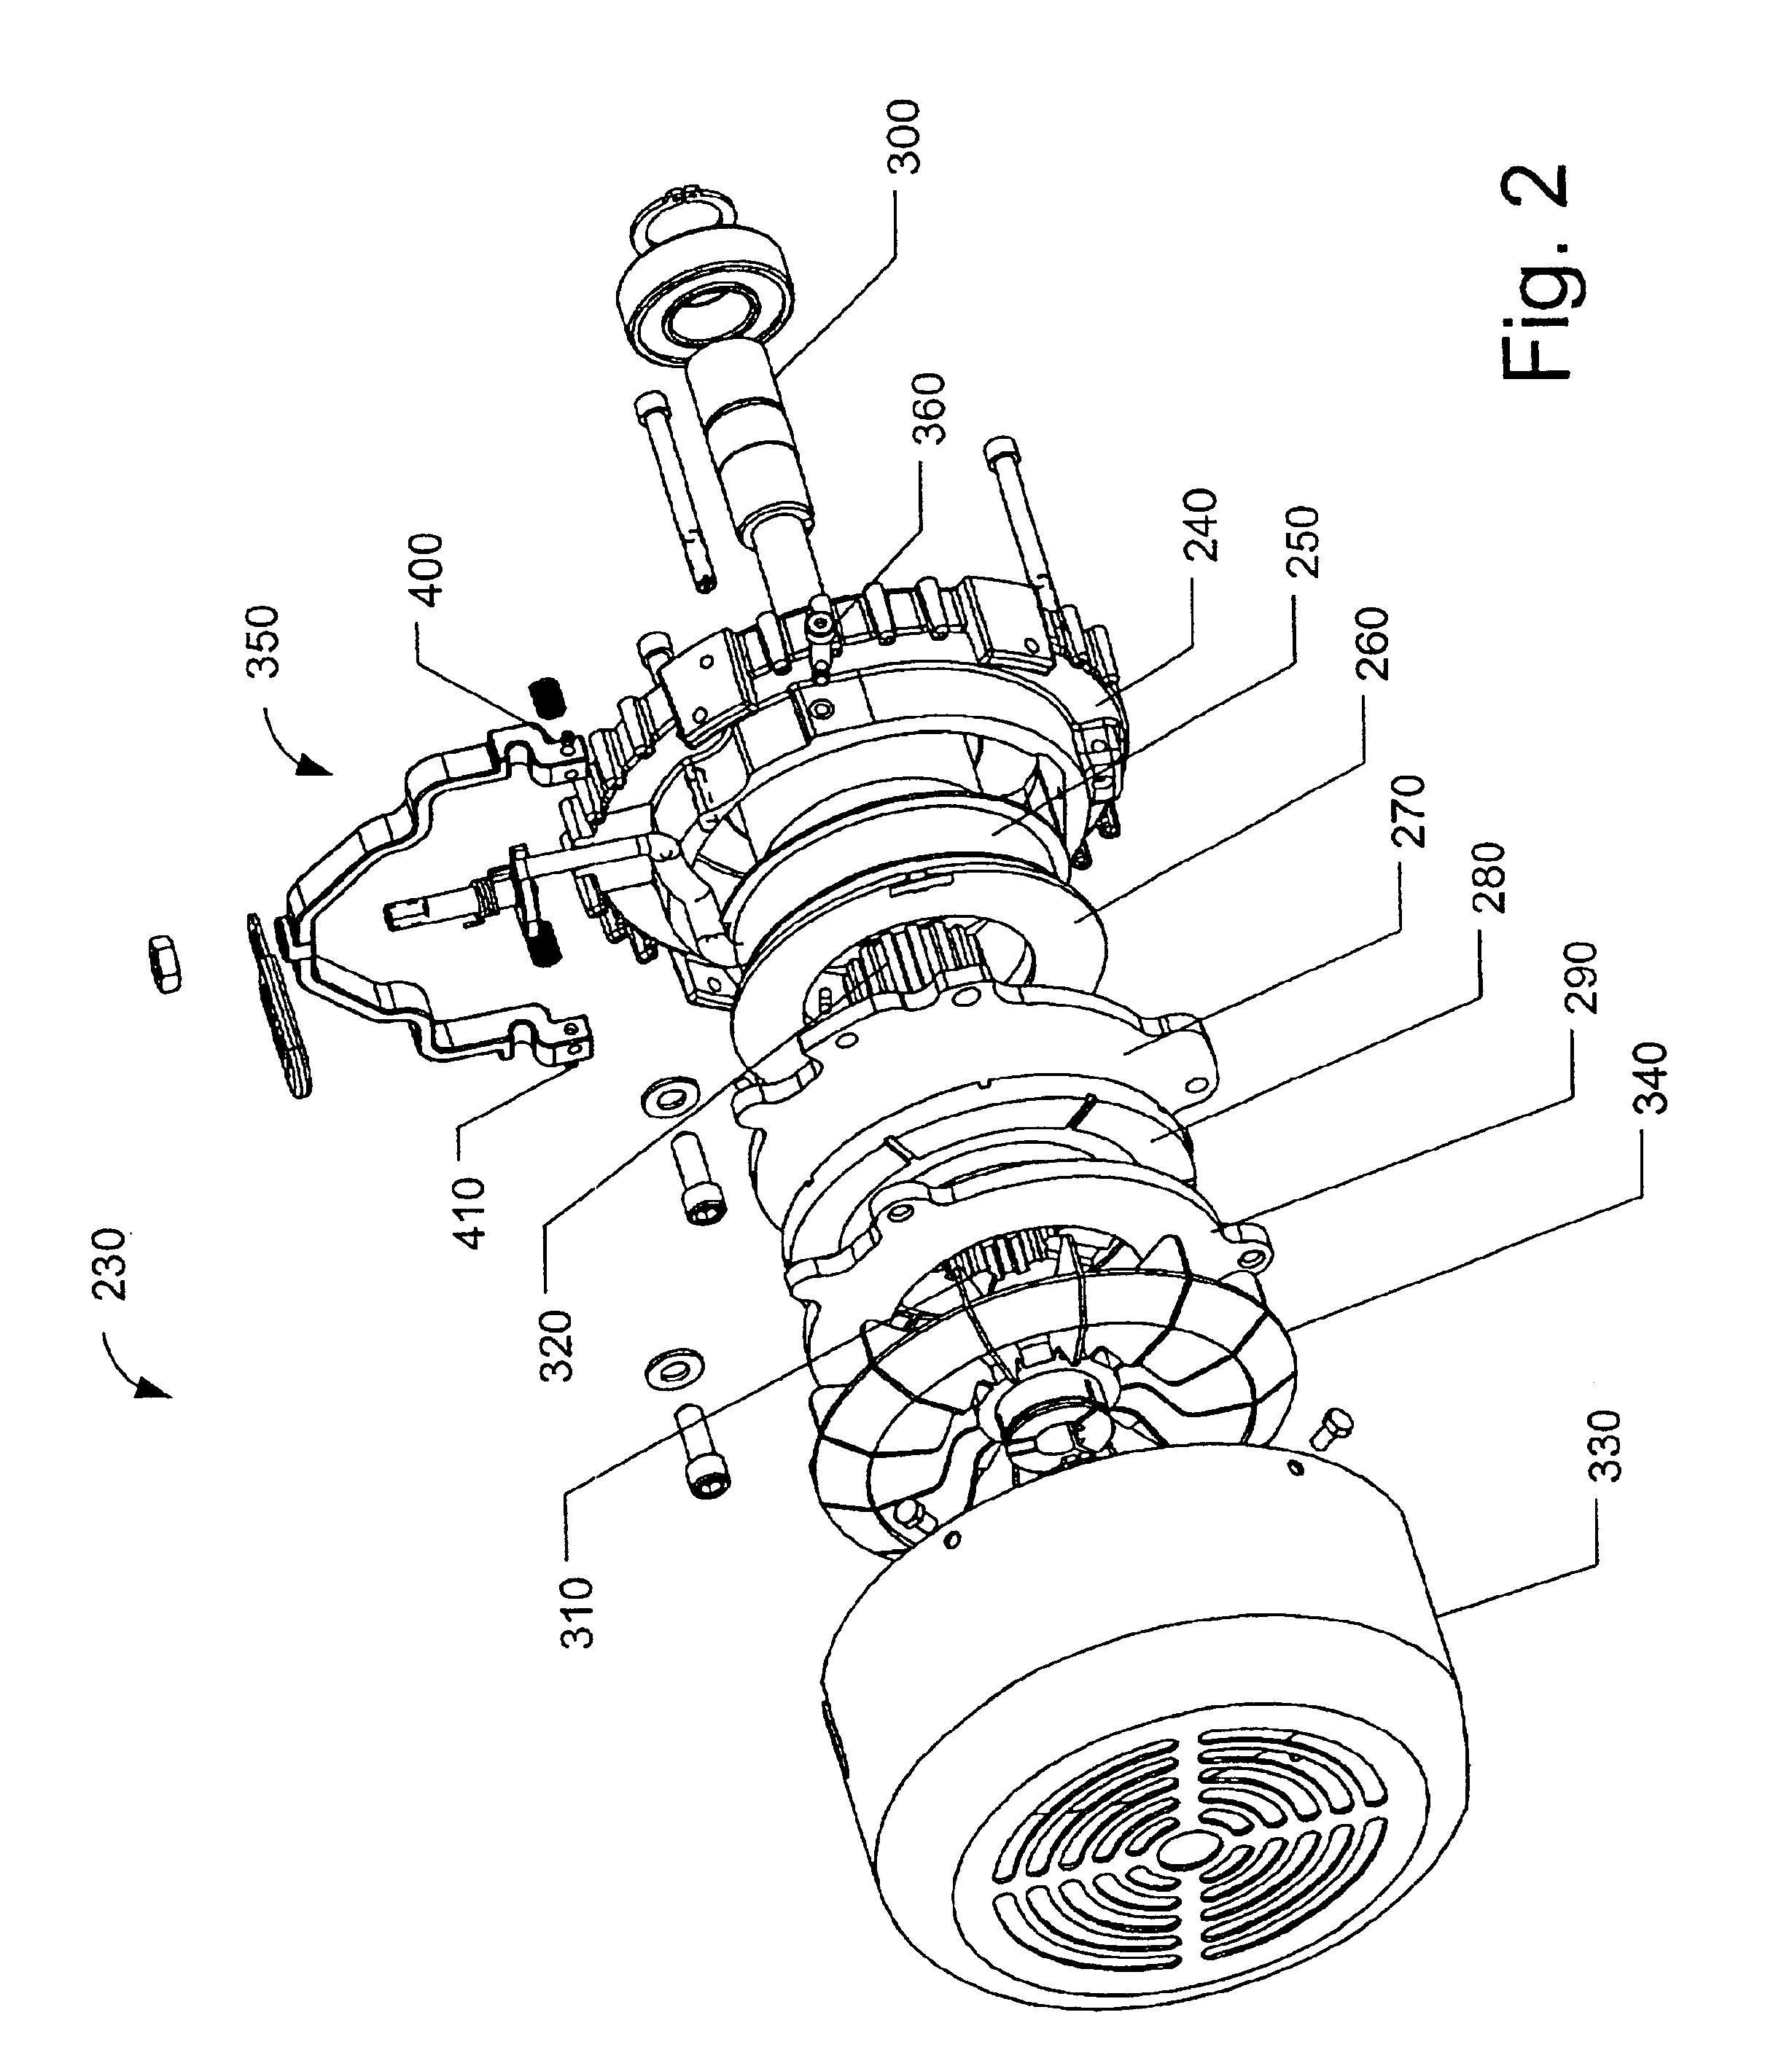 patent us6781264 - integral field cup and front end shield for an electric brake motor